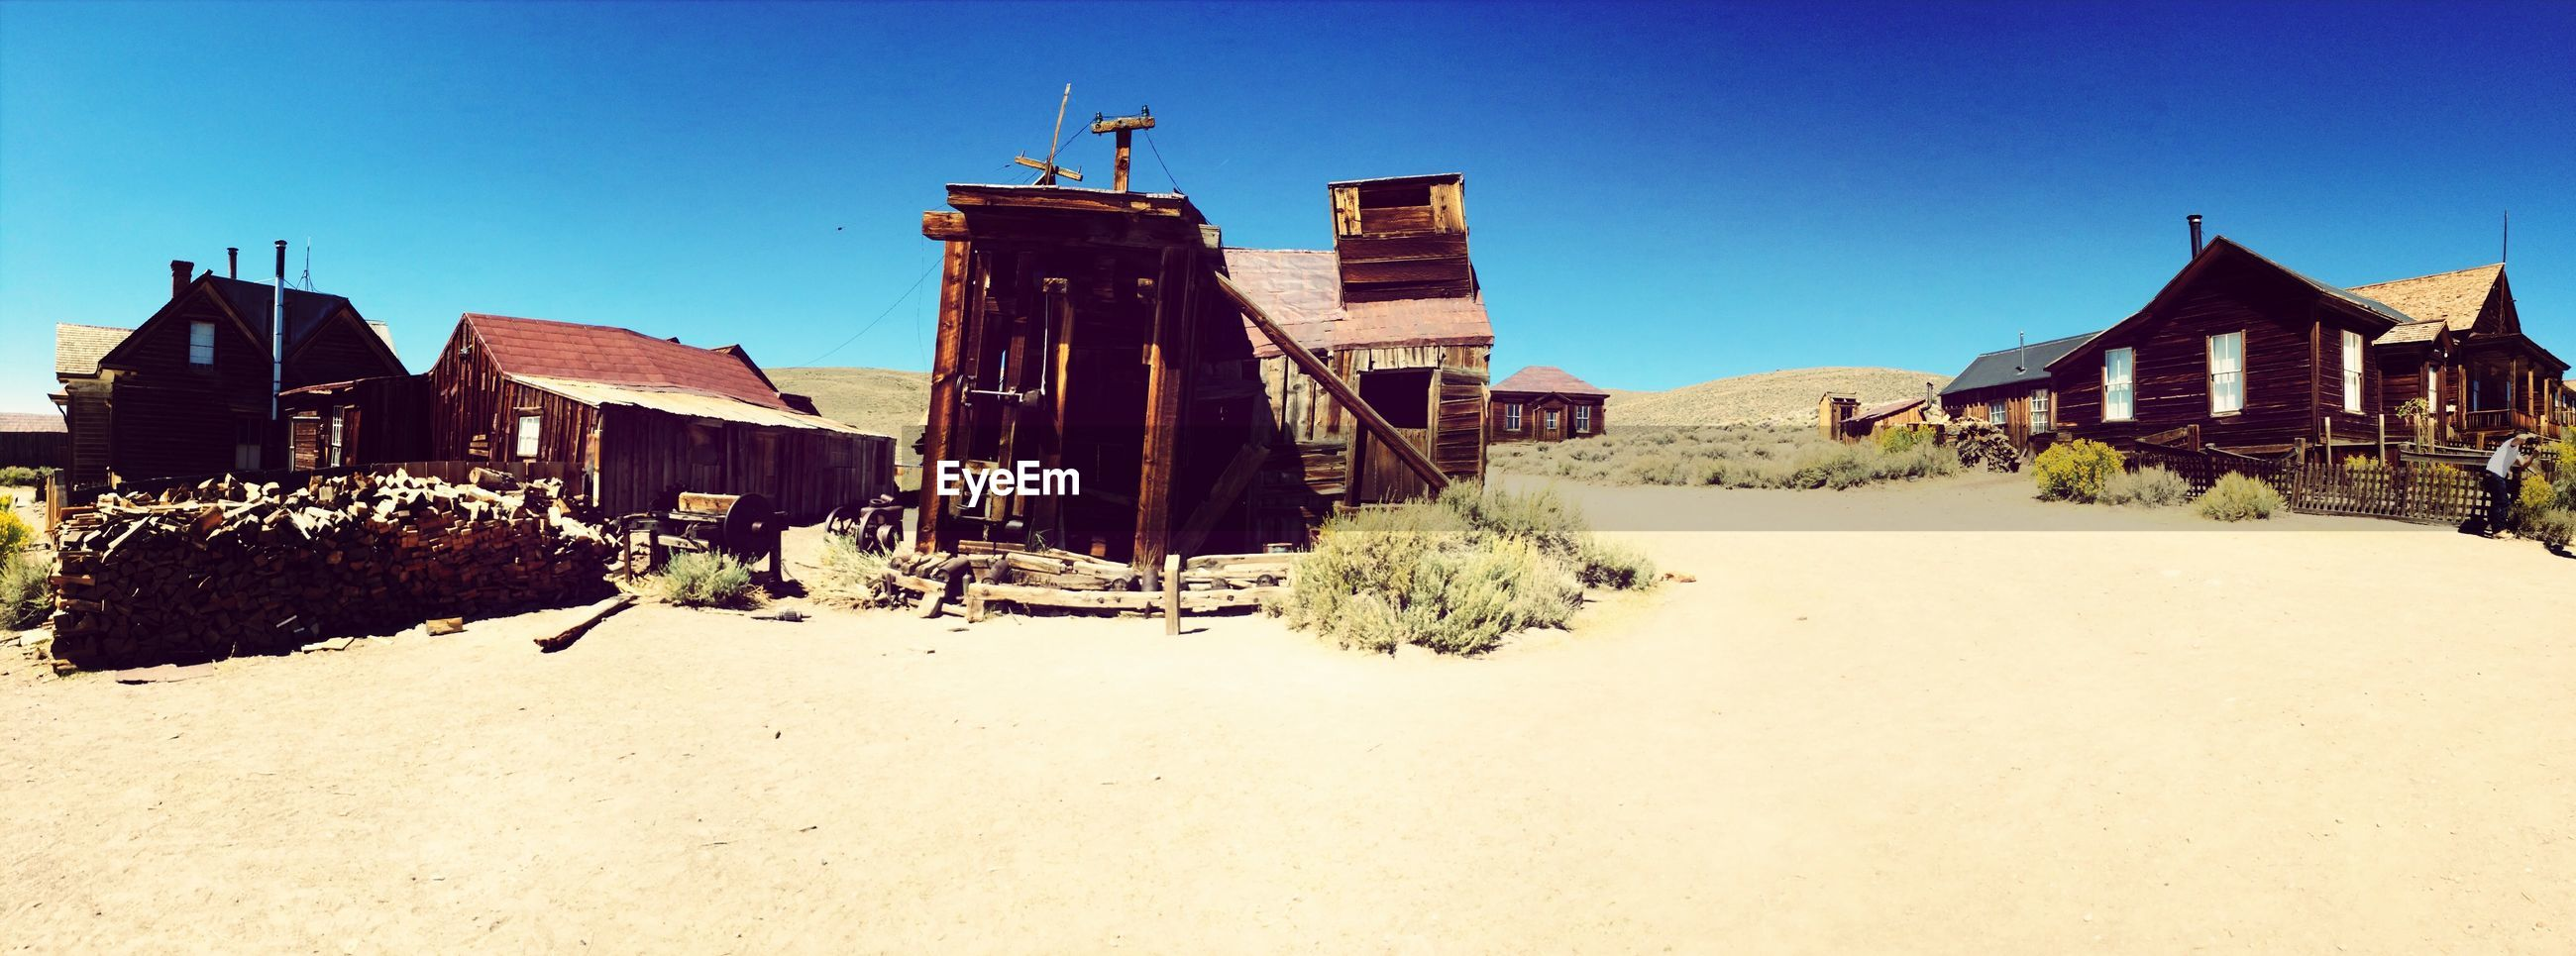 building exterior, architecture, built structure, clear sky, house, sunlight, blue, residential structure, old, shadow, day, residential building, sky, outdoors, abandoned, damaged, no people, sunny, incidental people, sand